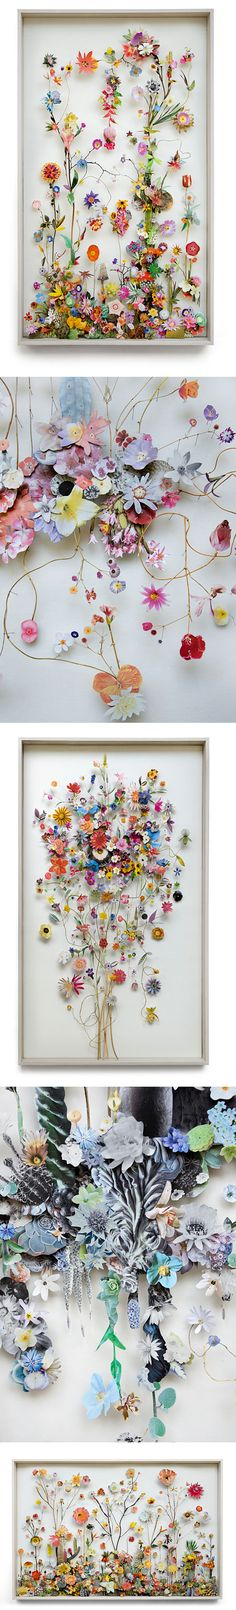 The difference between art and craft and the work of Anne Ten Donkelaar's collages.